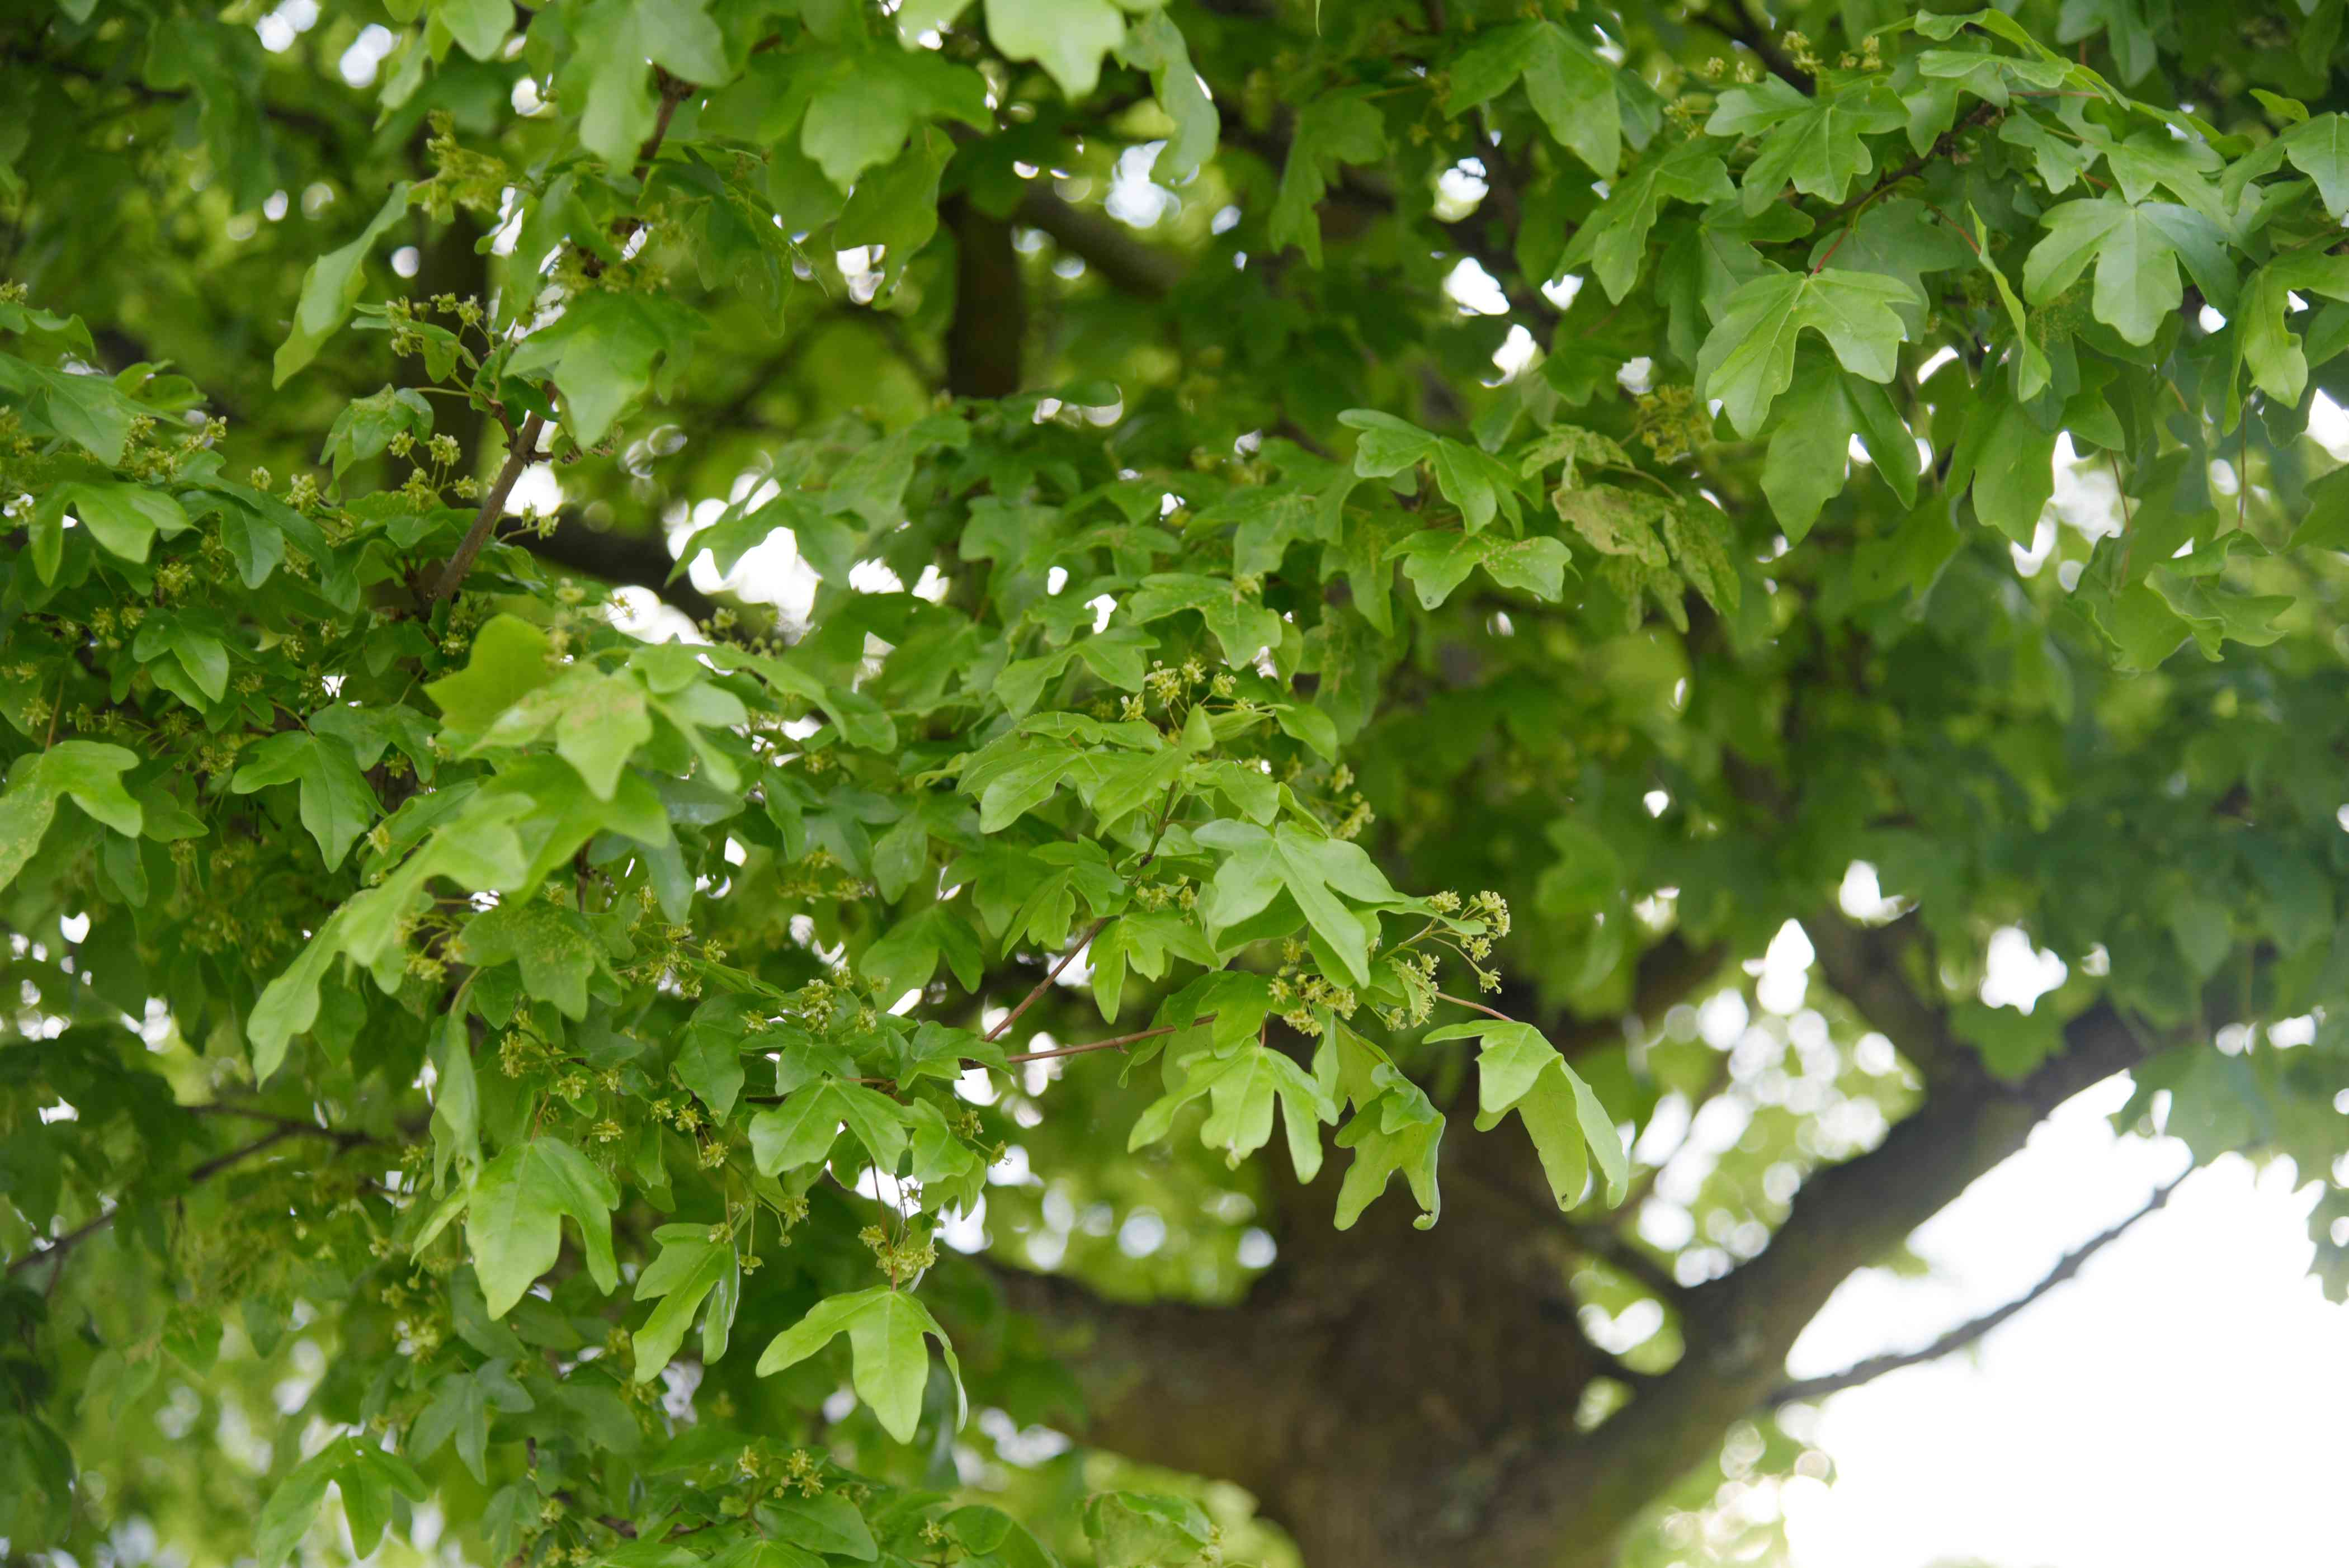 Hedge maple tree branches with small green flowers